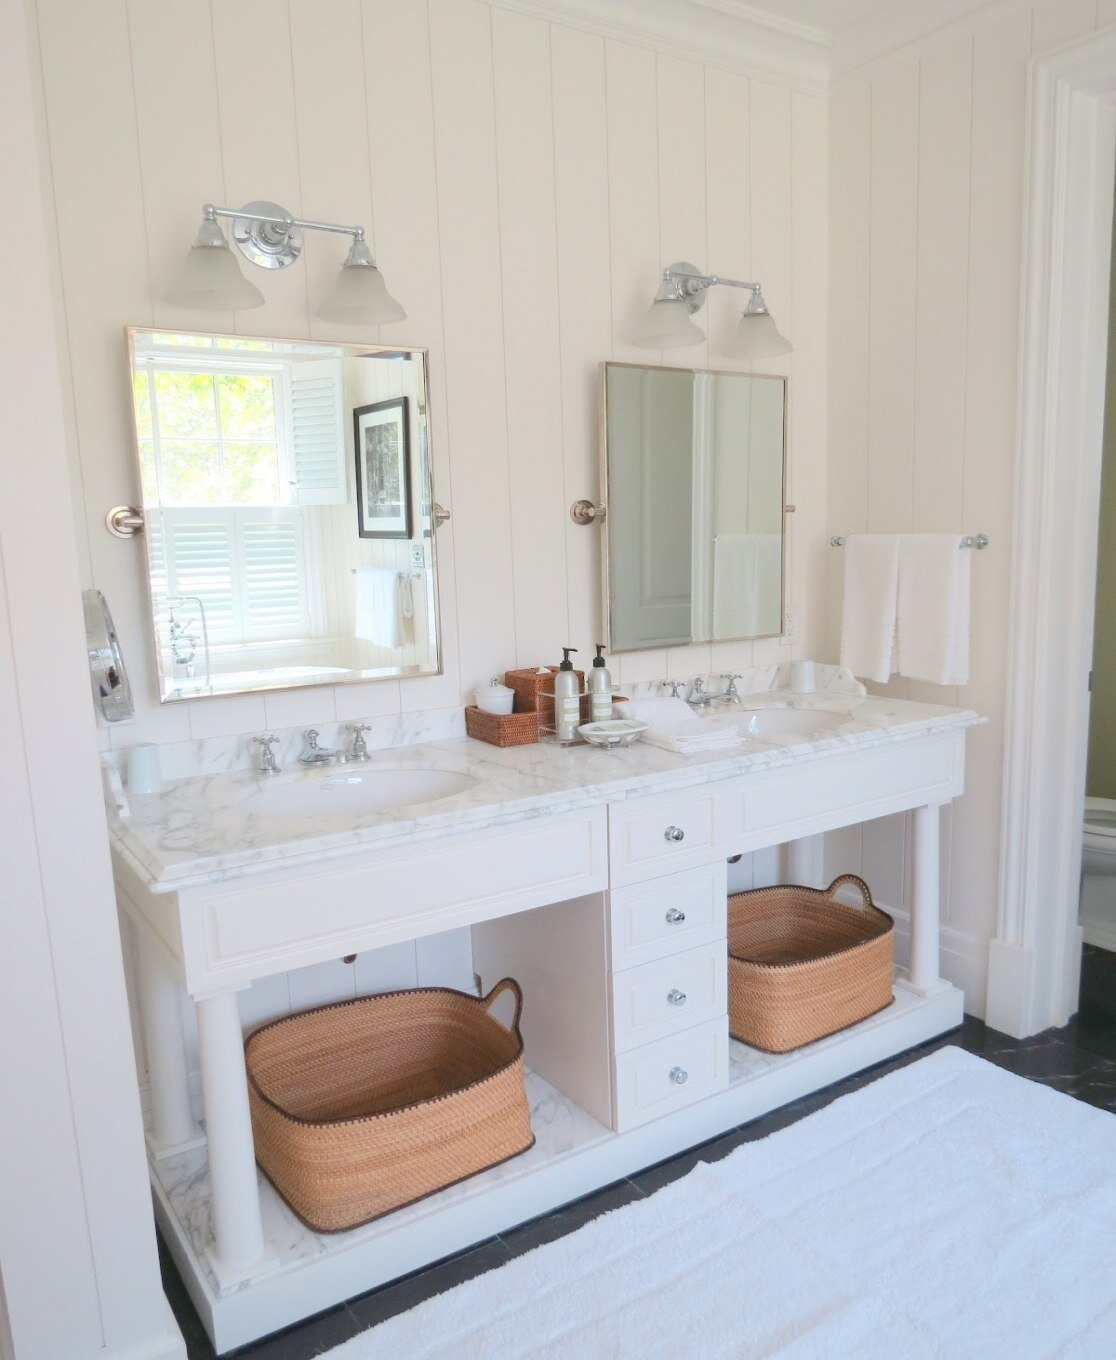 Barn Light Bathroom Vanity: Bathroom: Pottery Barn Vanity For Bathroom Cabinet Design